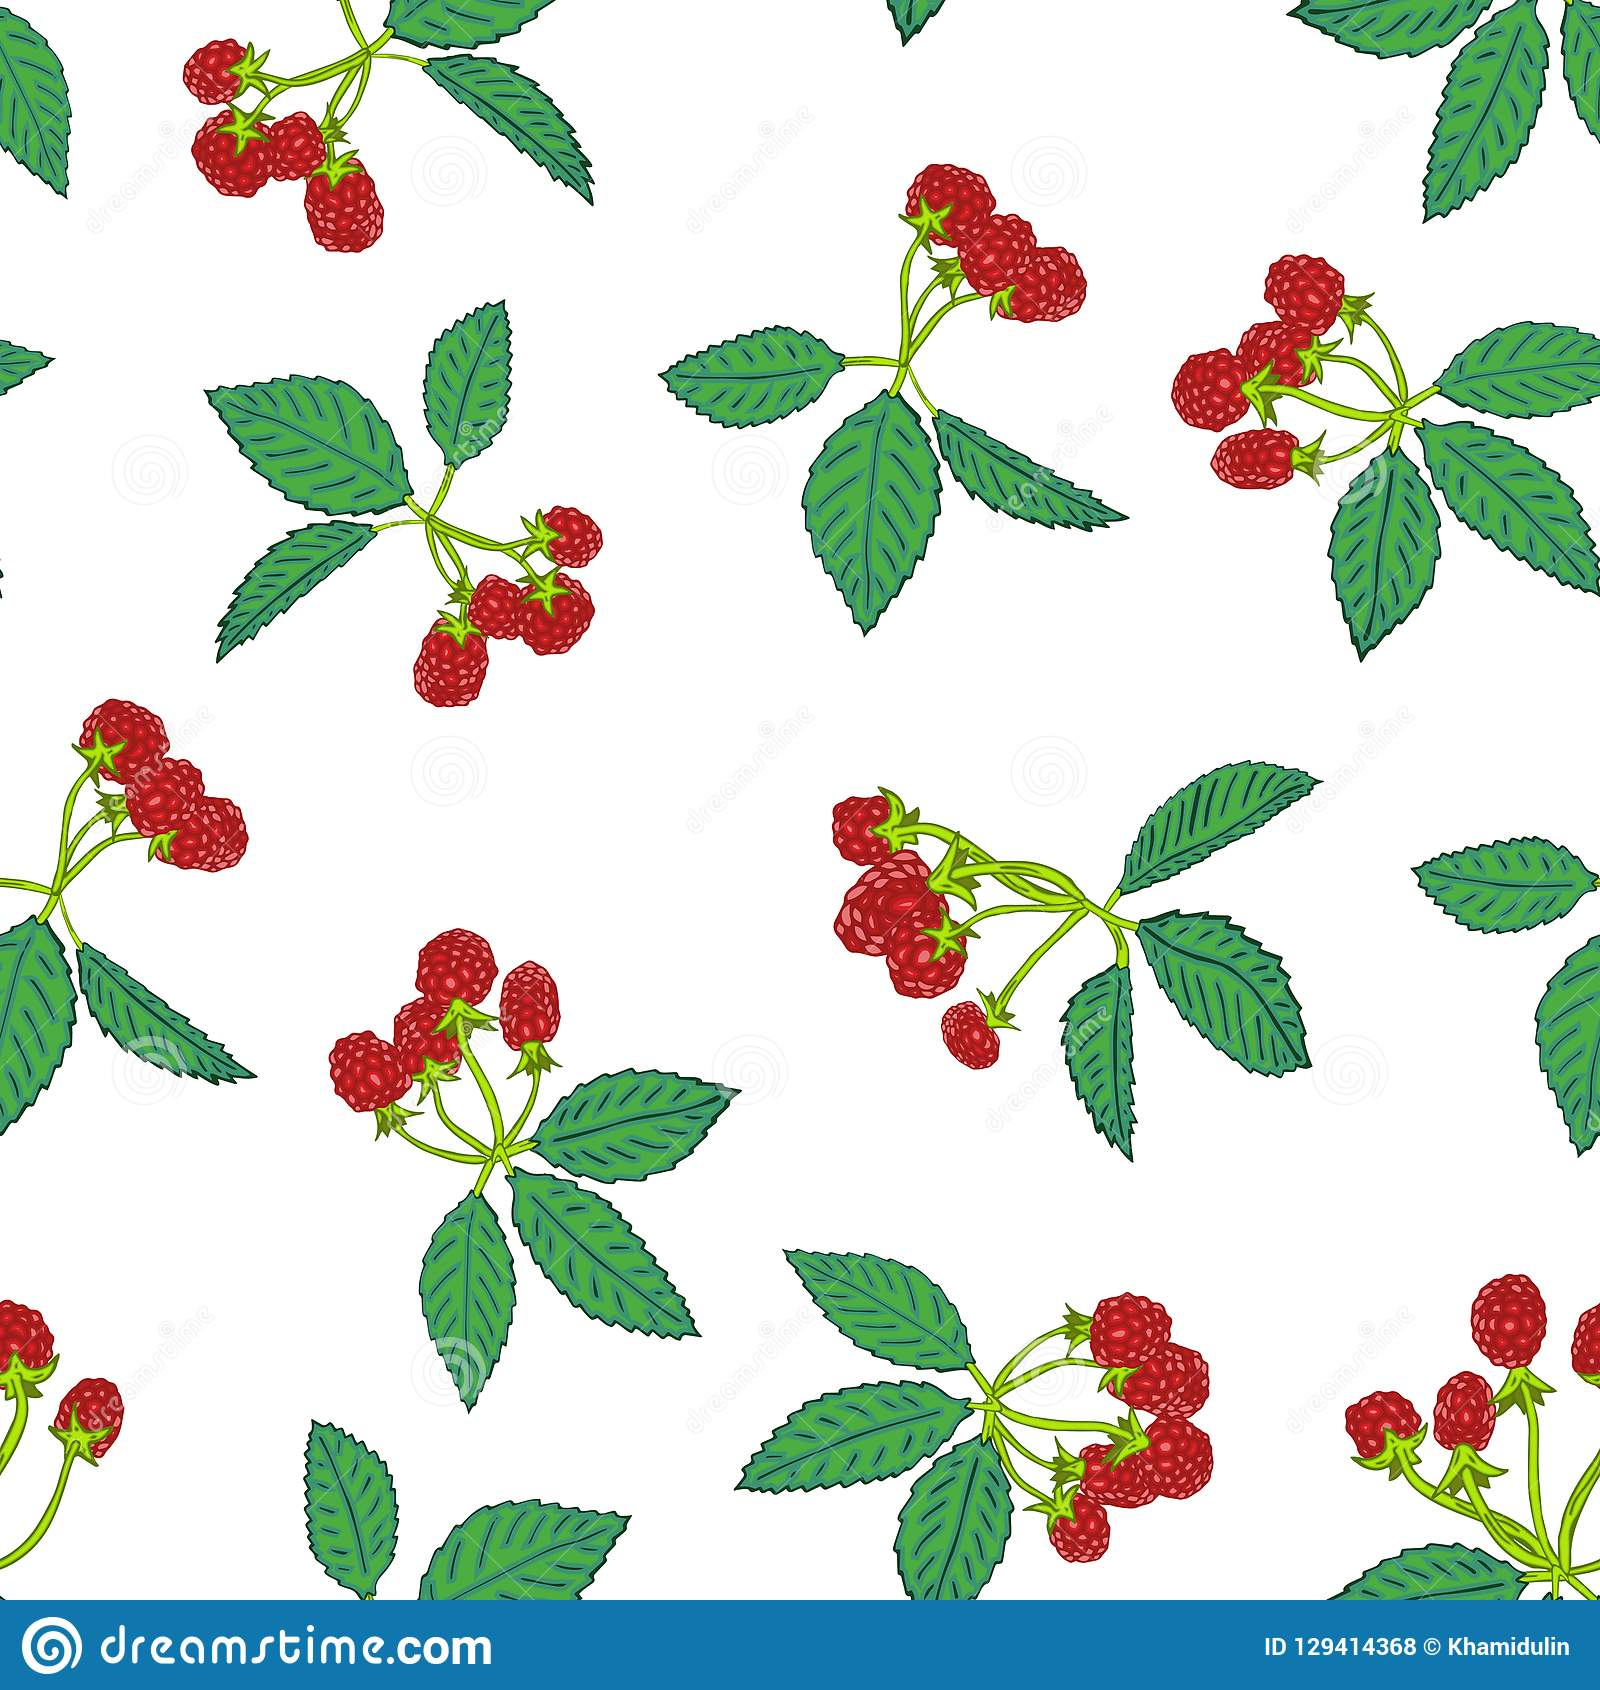 Seamless pattern of blackberry or raspberry. Berry background for textiles, wallpaper, sets of drawings, covers, surface